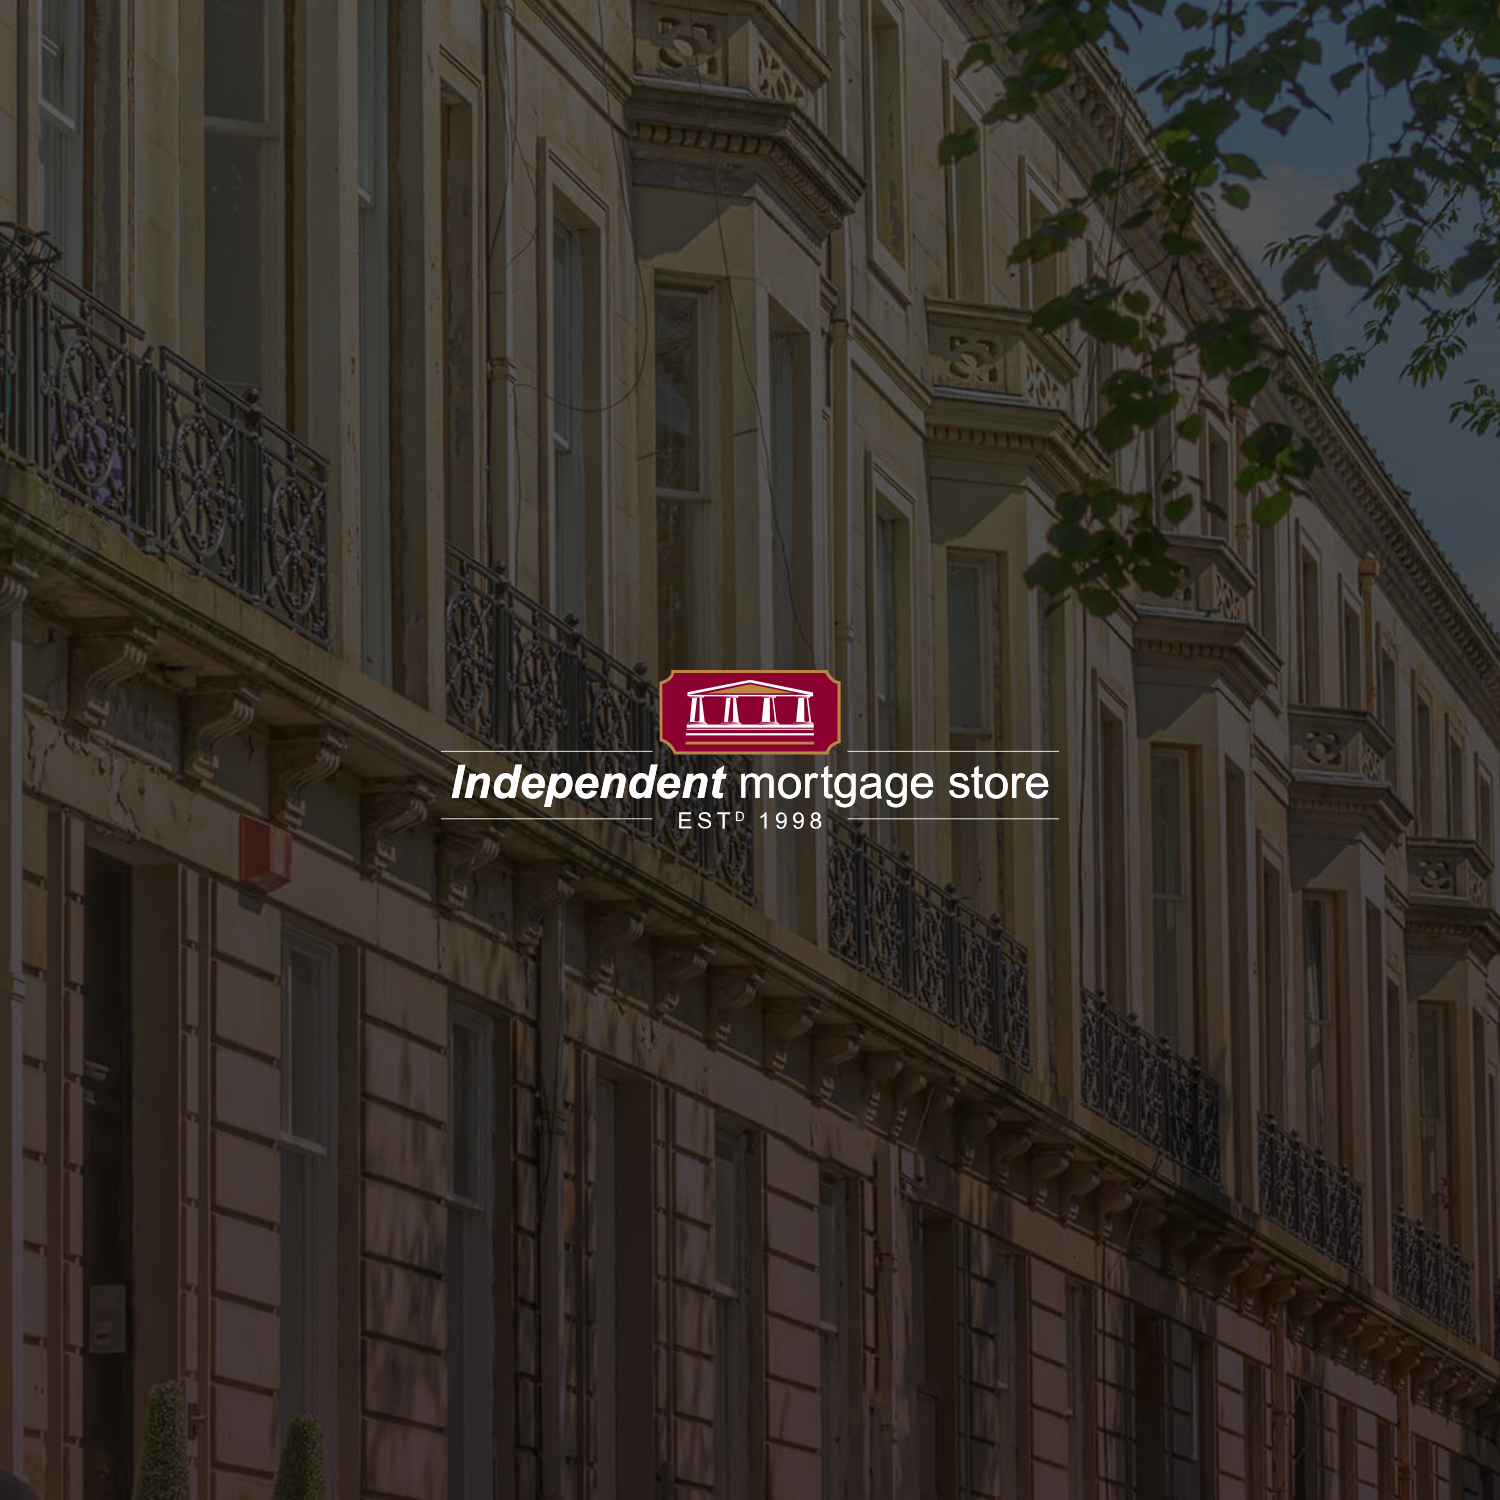 independent mortgage store glasgow